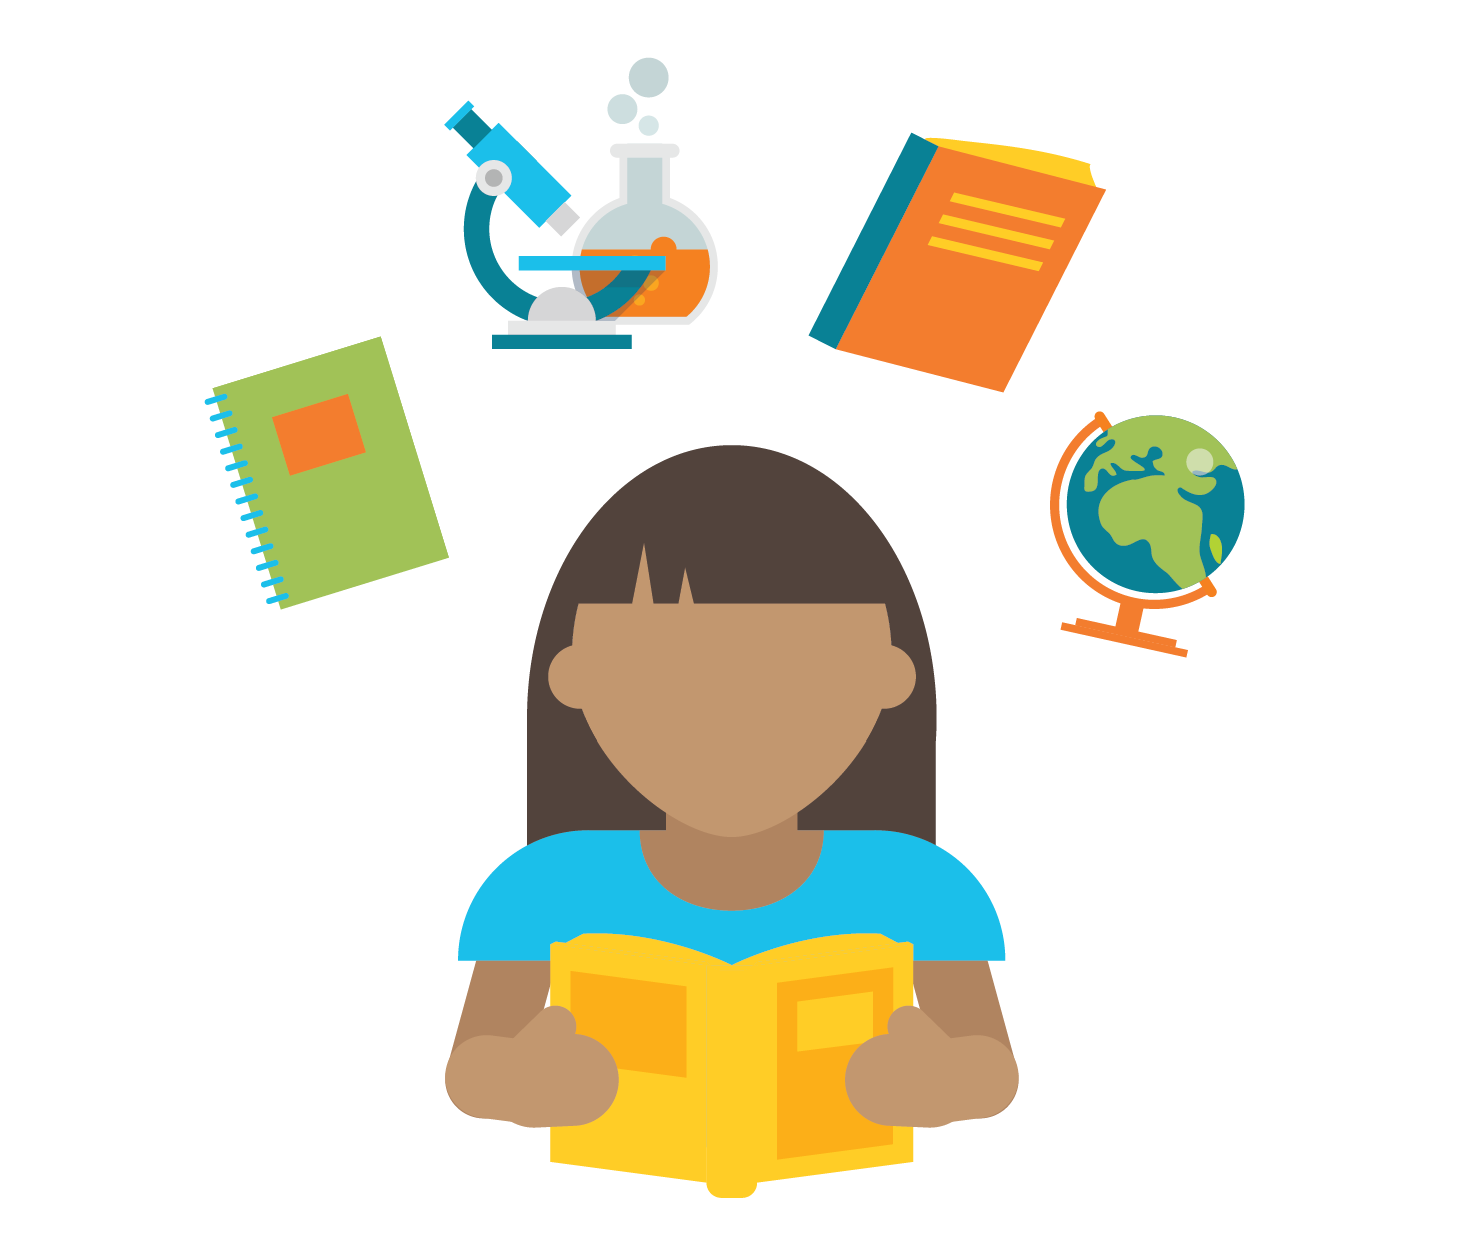 Icon of a student with different icons related to class subjects above them